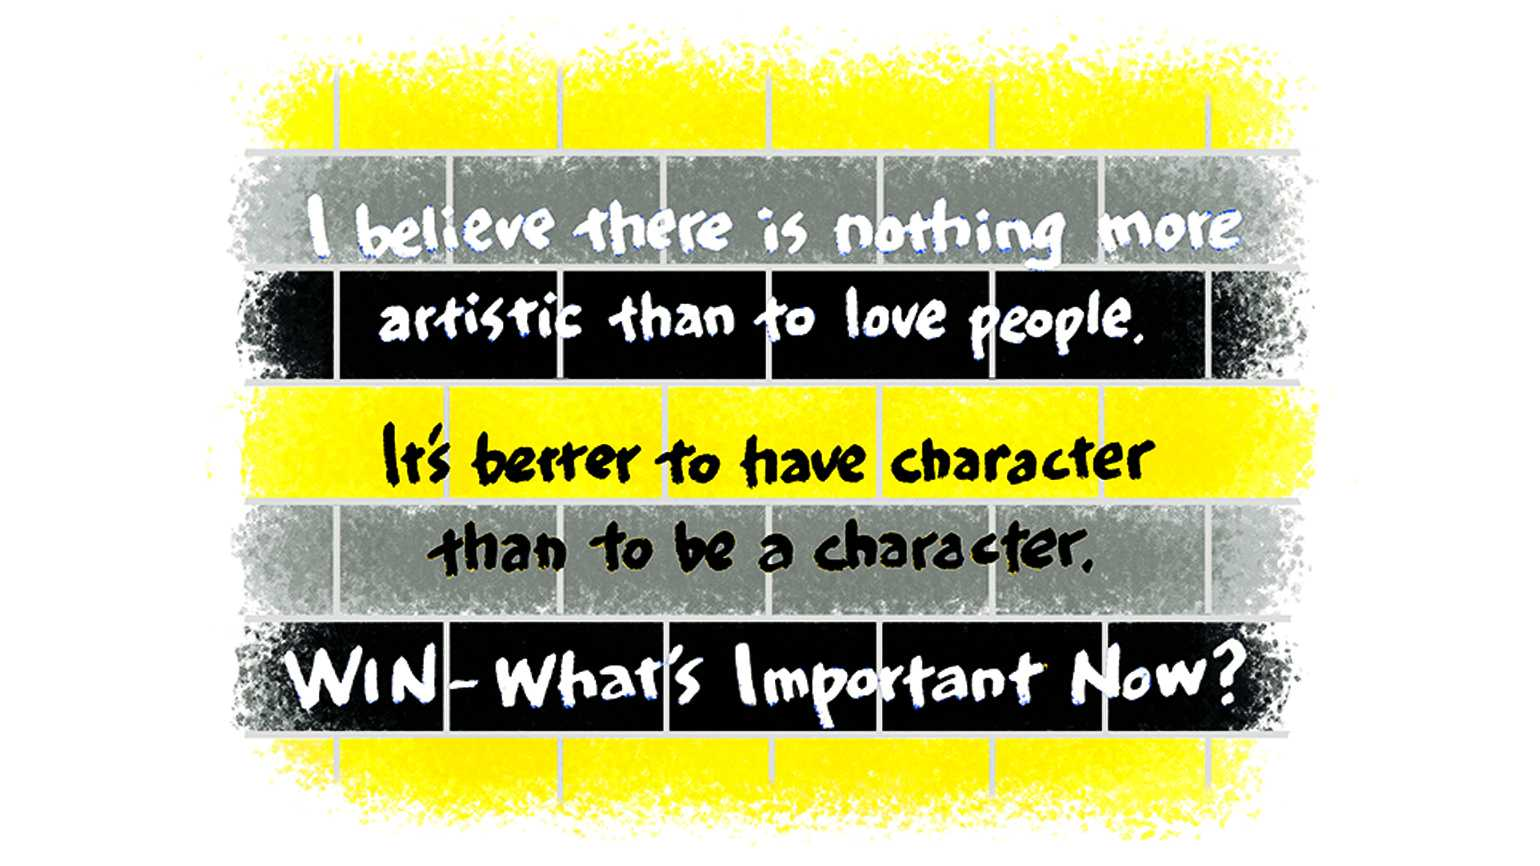 An illustration of a few inspiring quotes written on a yellow and black brick wall